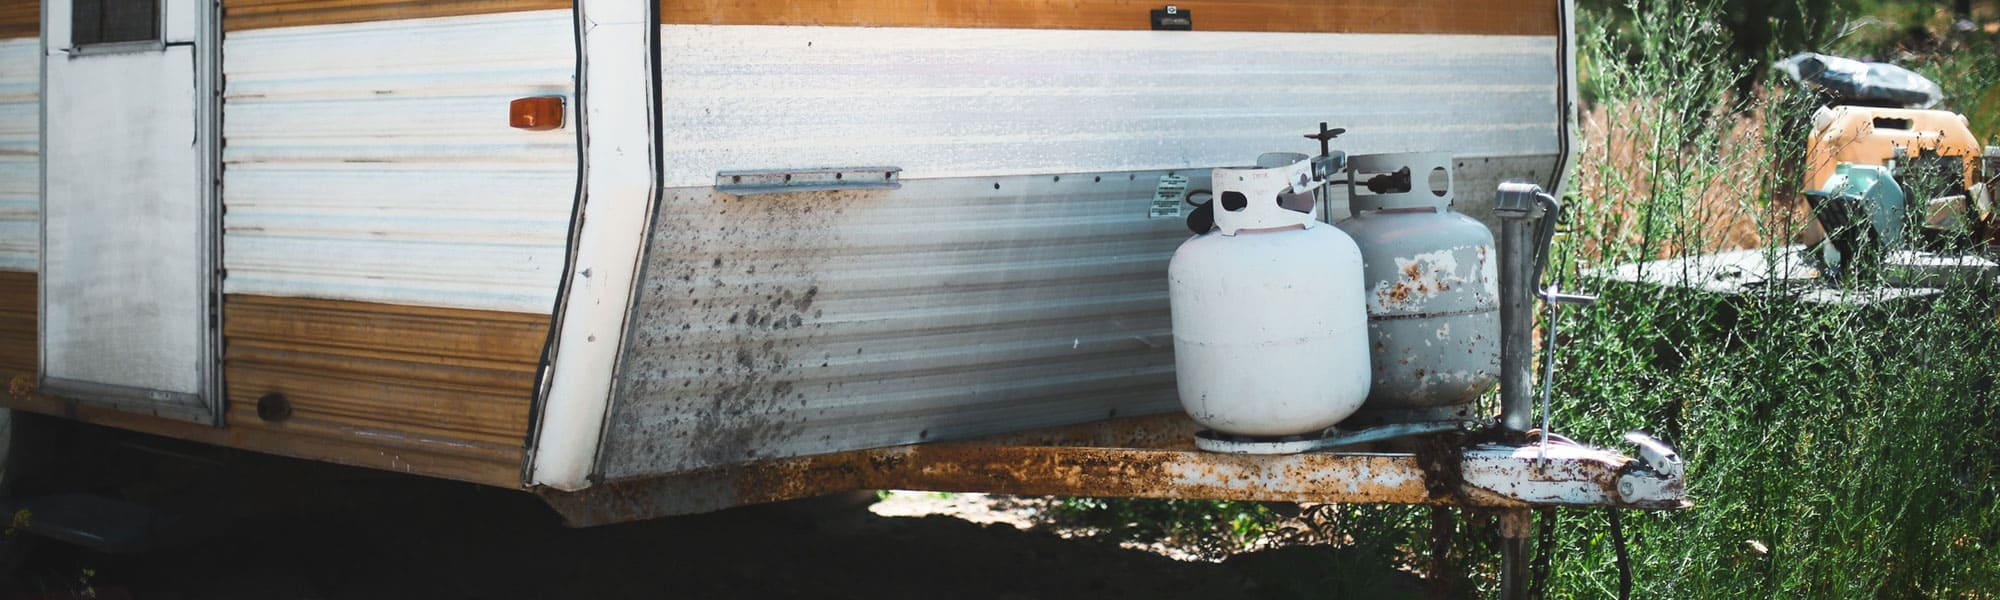 rv-life-hack-how-to-check-how-much-propane-you-have-left